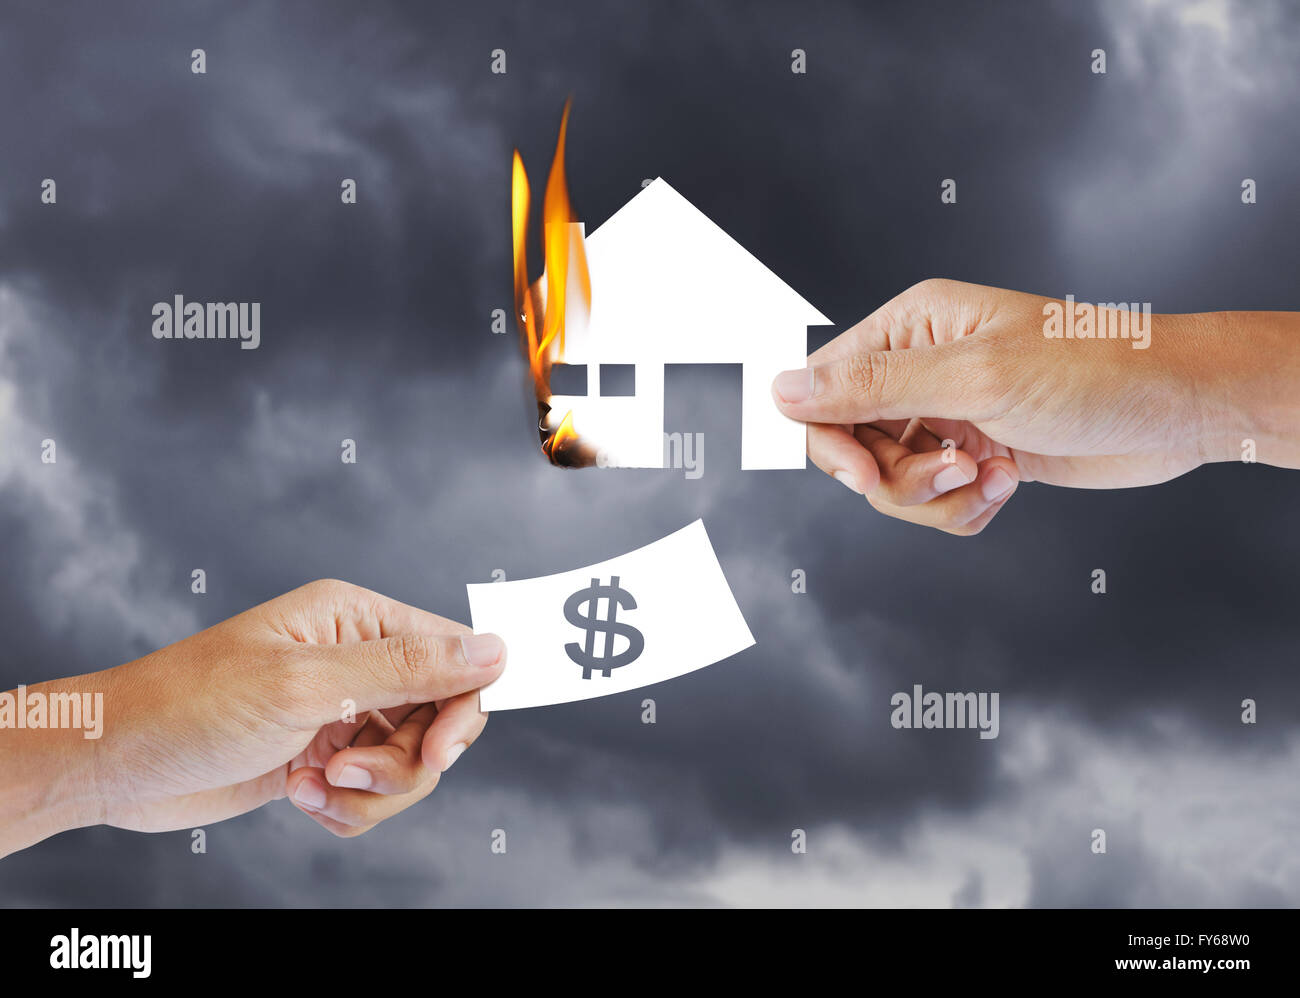 Burning house, Fire insurance - Stock Image